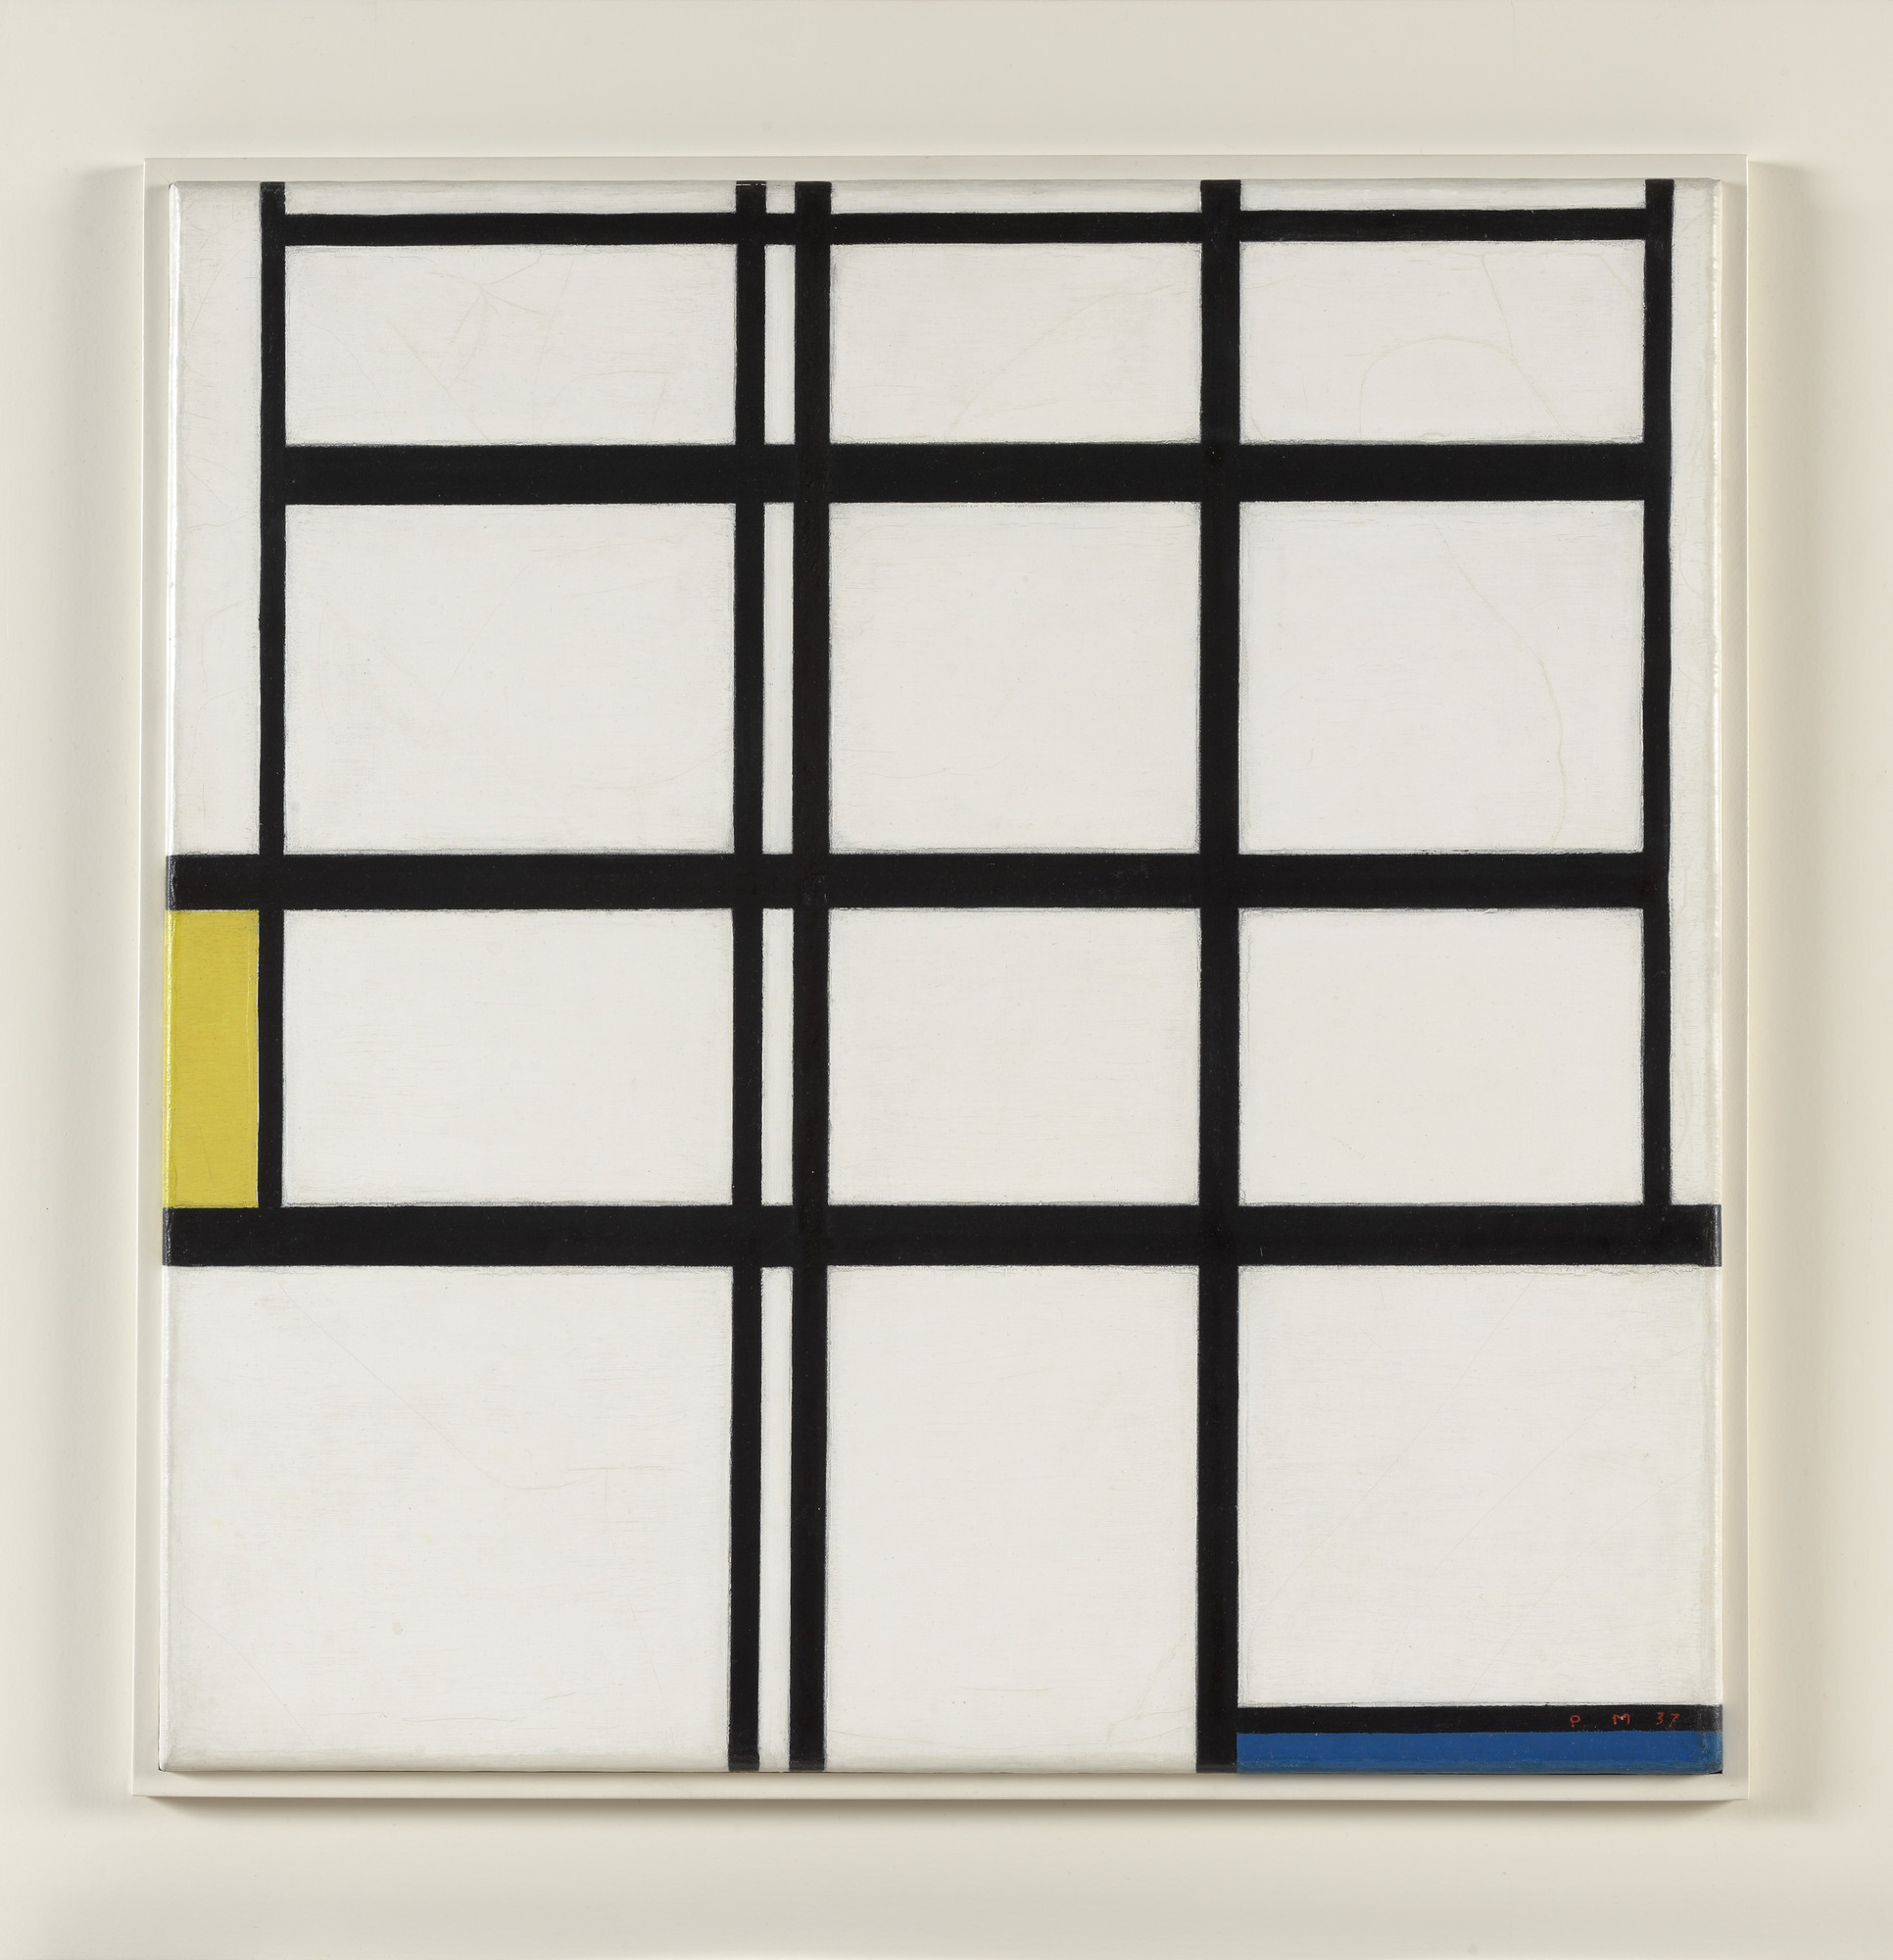 Piet Mondrian. Composition in Yellow, Blue, and White, I. 1937